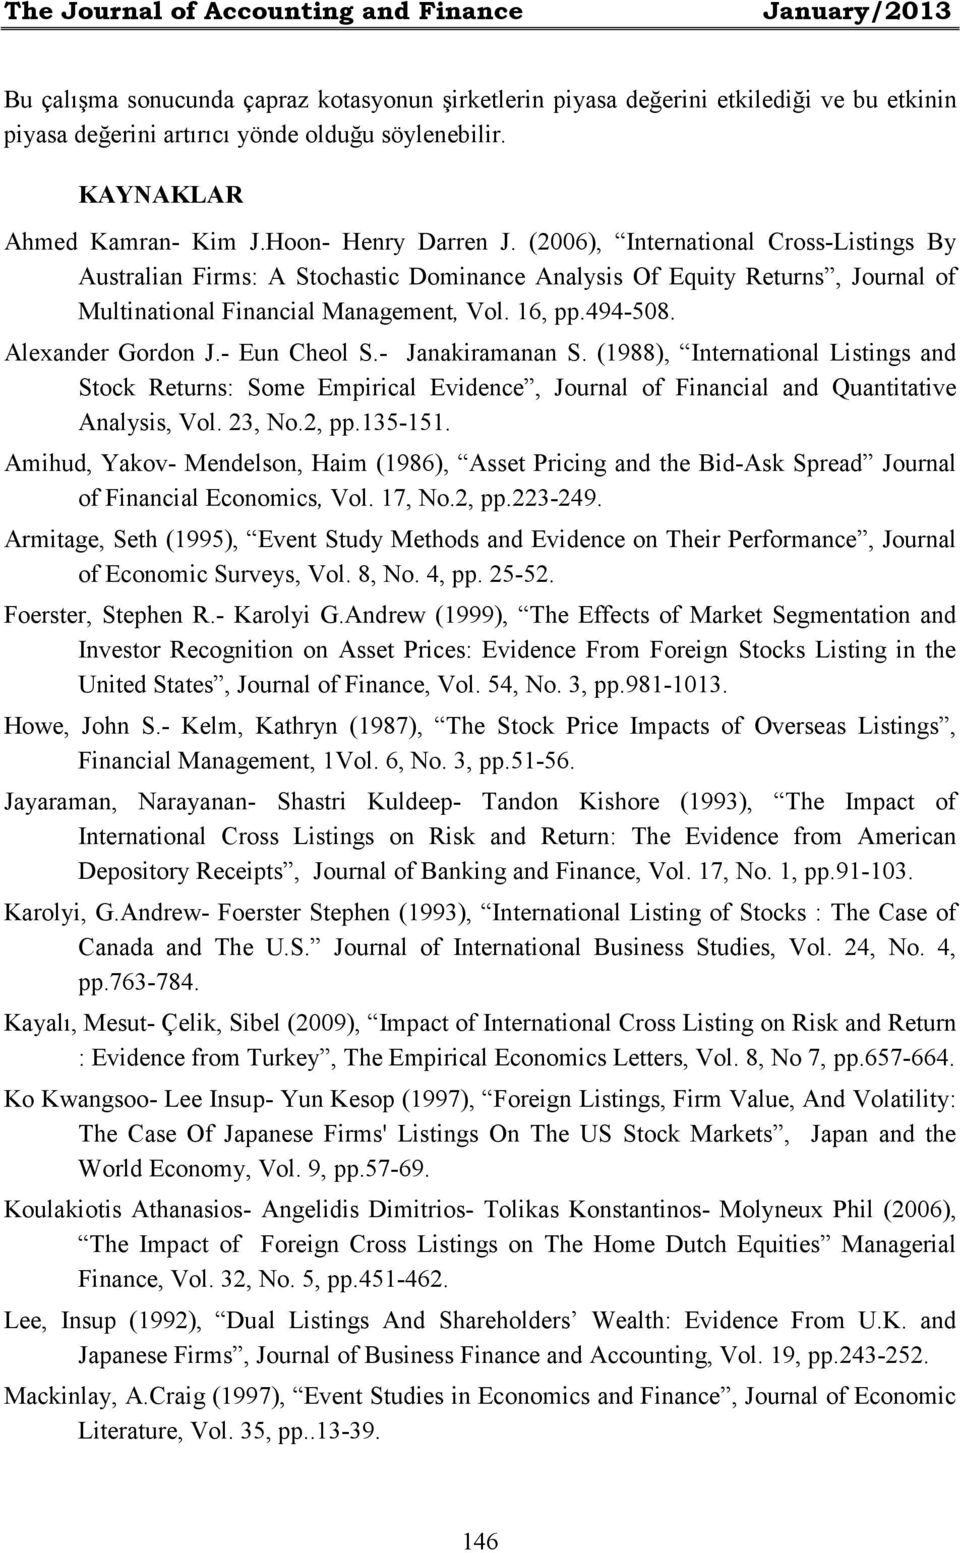 (2006), International Cross-Listings By Australian Firms: A Stochastic Dominance Analysis Of Equity Returns, Journal of Multinational Financial Management, Vol. 16, pp.494-508. Alexander Gordon J.